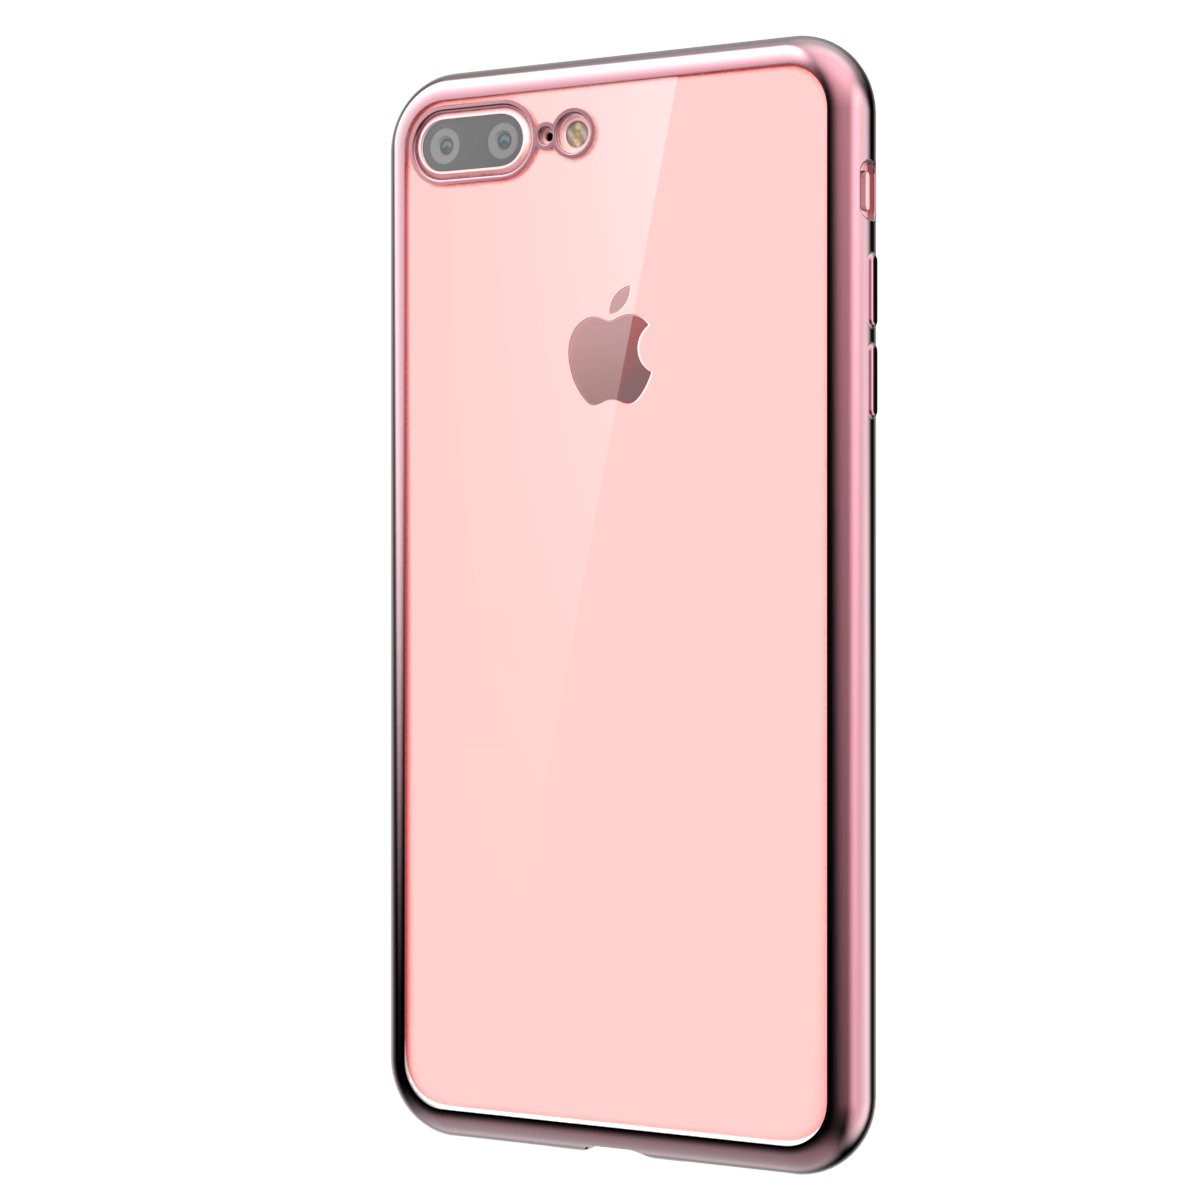 switcheasy flash case for apple iphone 7 plus rose gold buy online in south africa. Black Bedroom Furniture Sets. Home Design Ideas